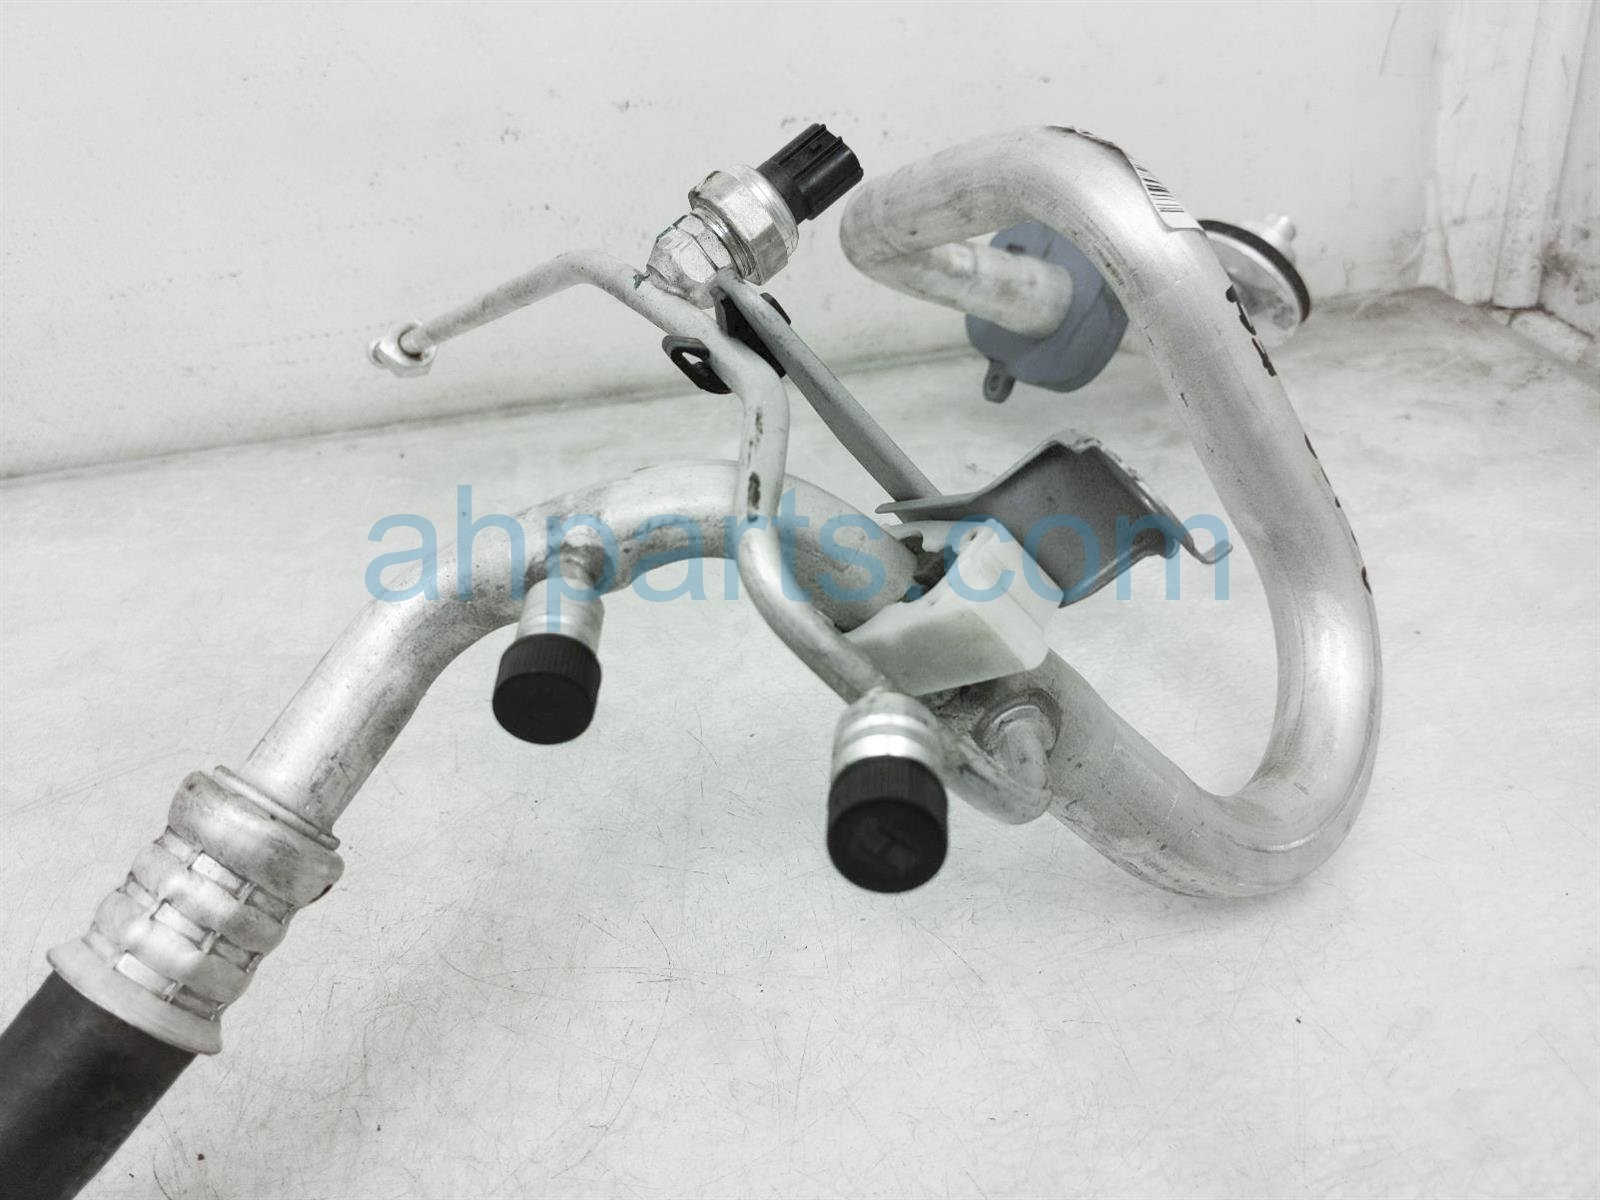 Sold 2019 Honda Pilot Line / Pipe Ac Suction Hose Assy 80311 TG7 A02 Replacement